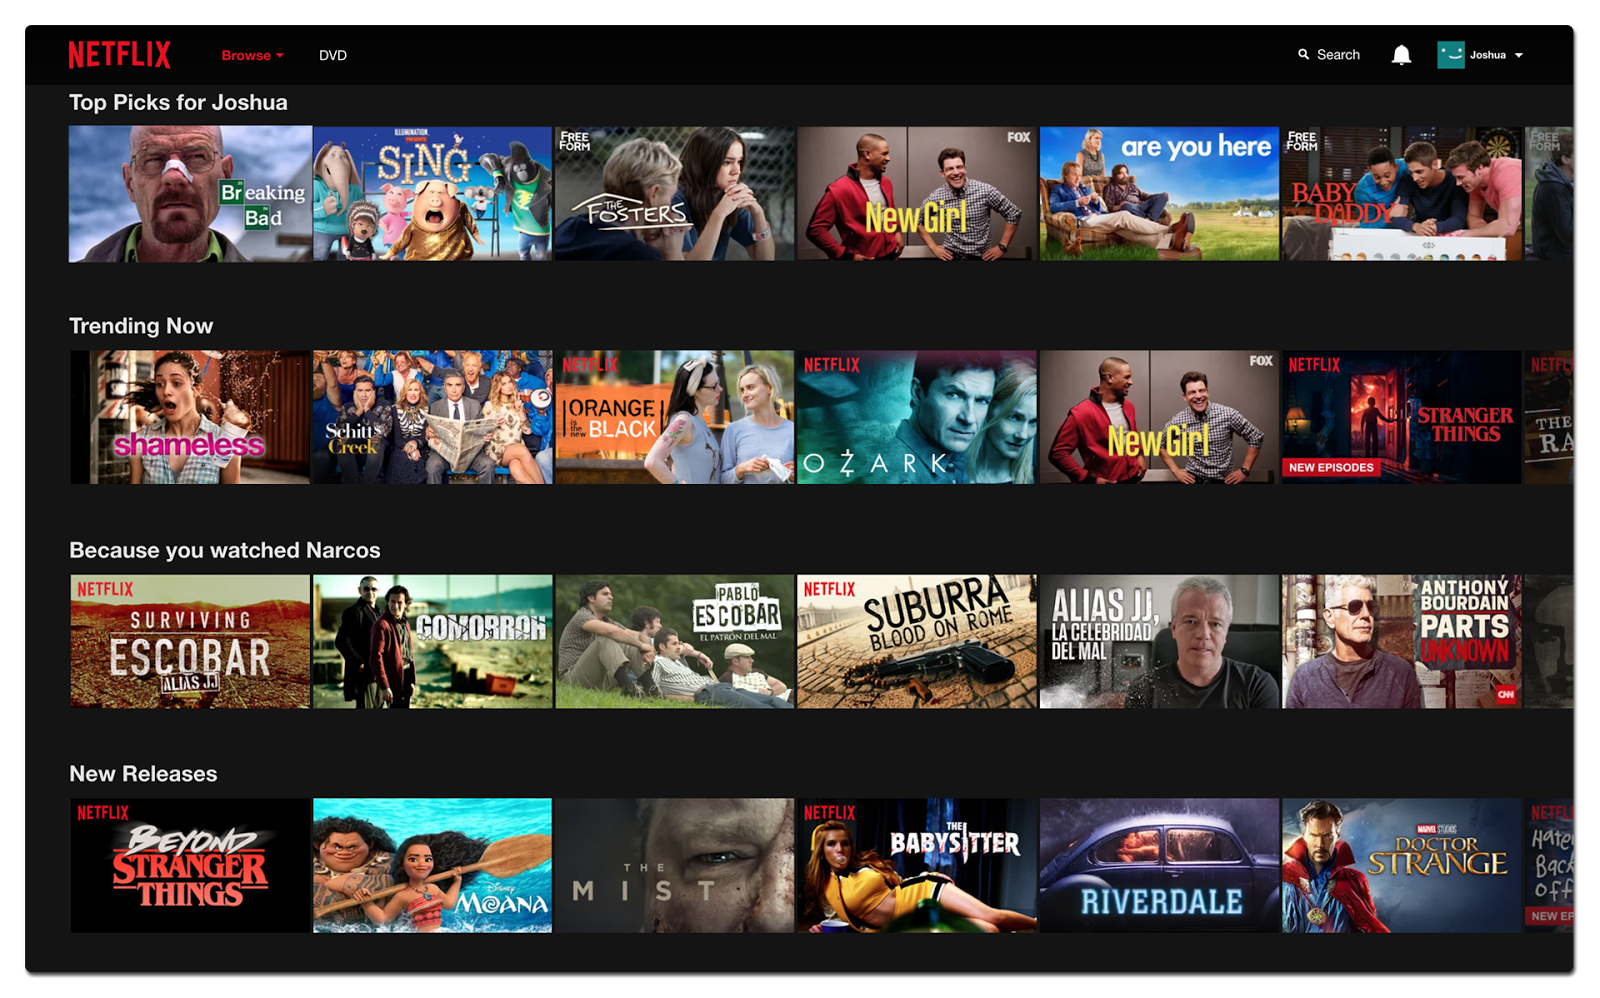 Personalized content playlists generated by Netflix recommendation algorithms